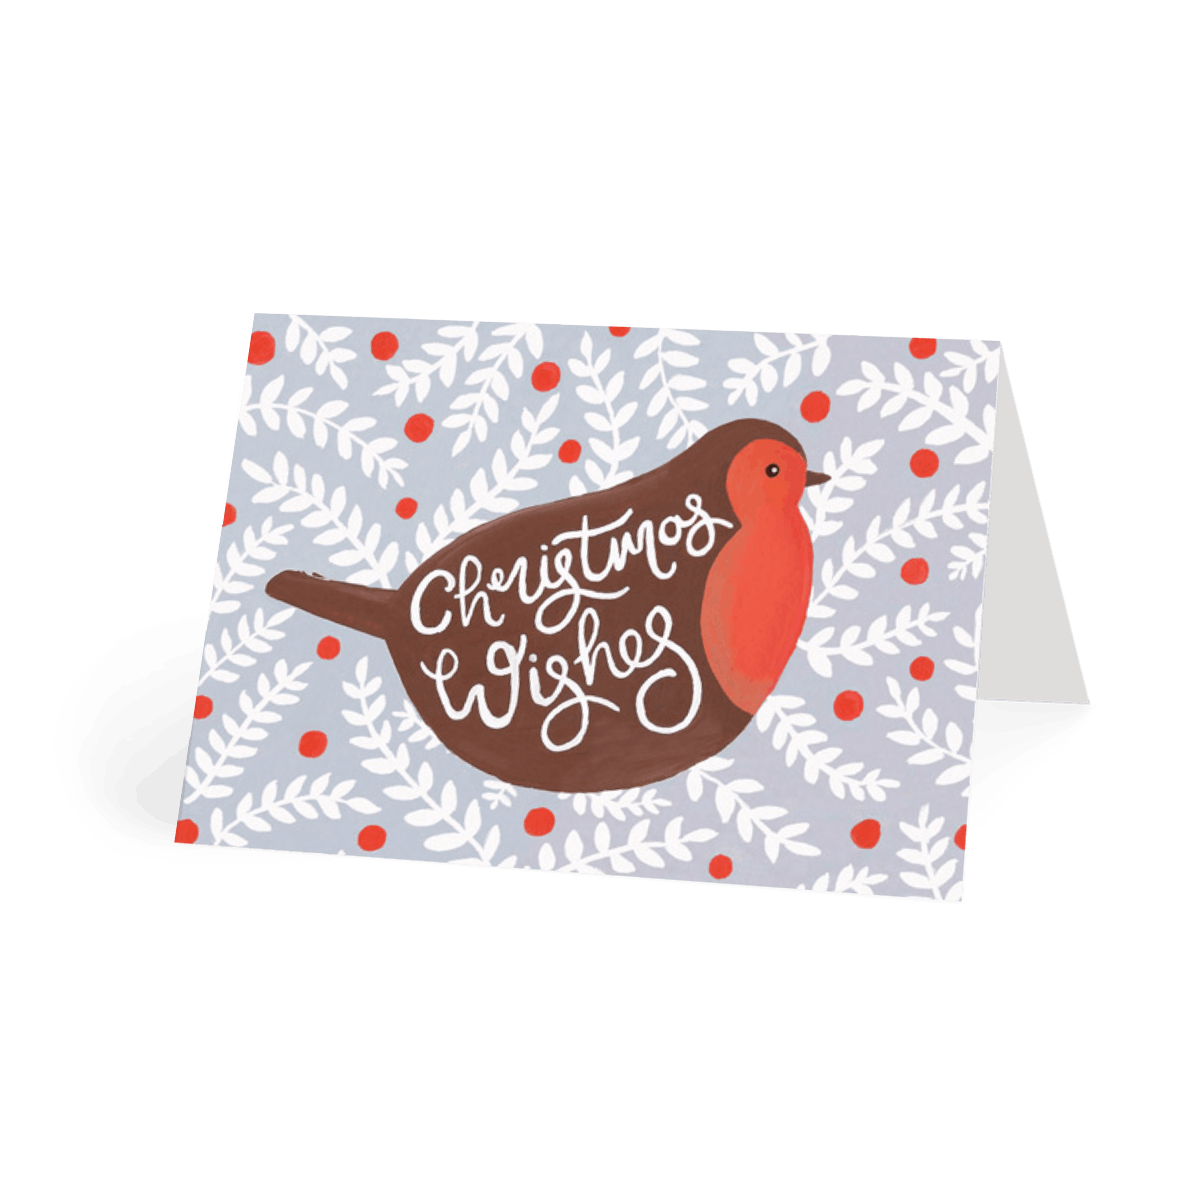 Https%3a%2f%2fwww.papier.com%2fproduct image%2f24670%2f14%2fchristmas wishes robin 6167 avant 1498576346.png?ixlib=rb 1.1